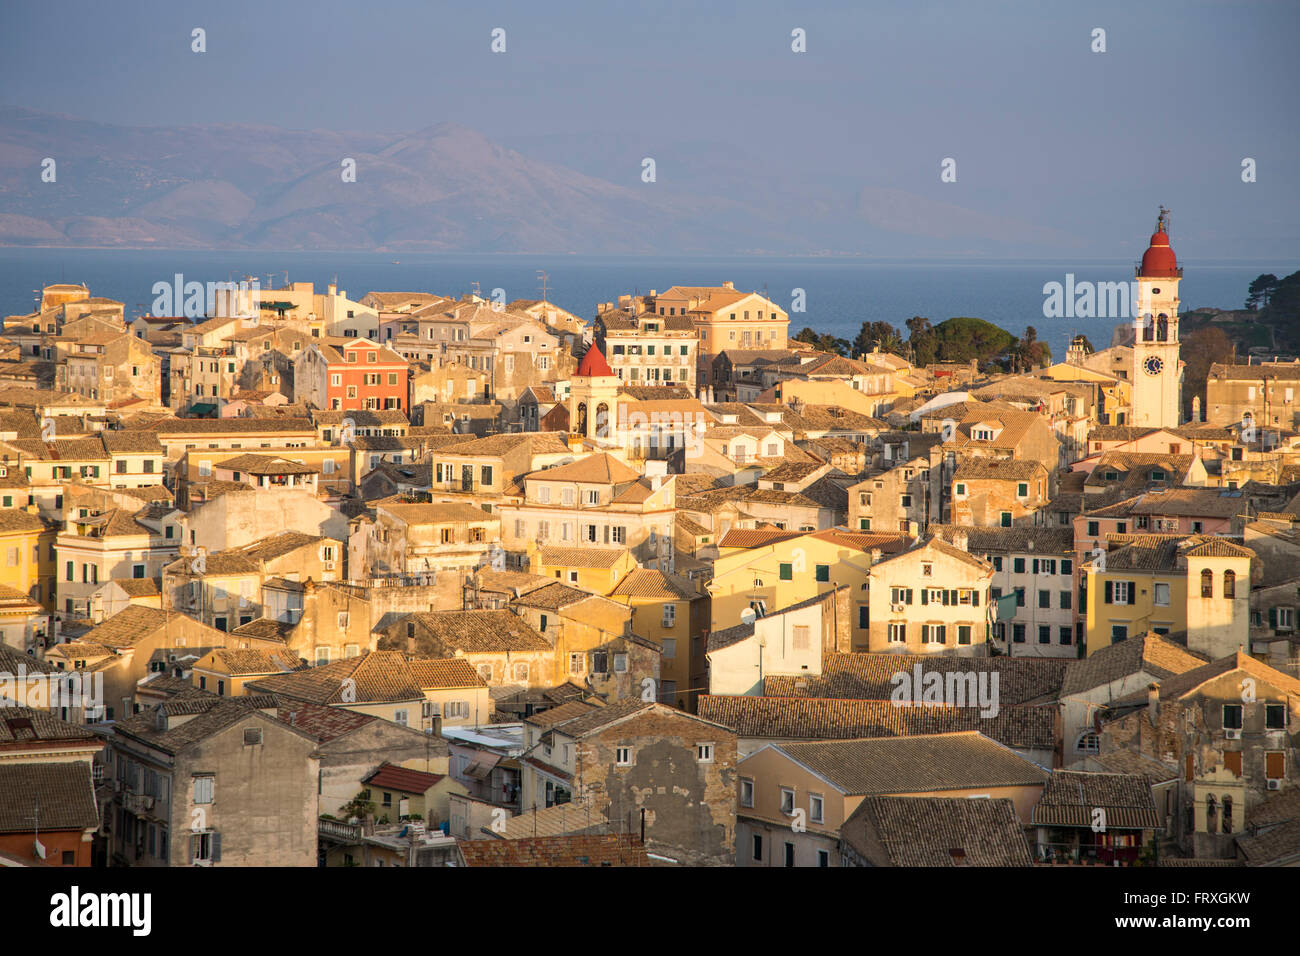 Old Town buildings seen from the New Fortress, Kerkyra, Corfu Town, Corfu, Ionian Islands, Greece - Stock Image